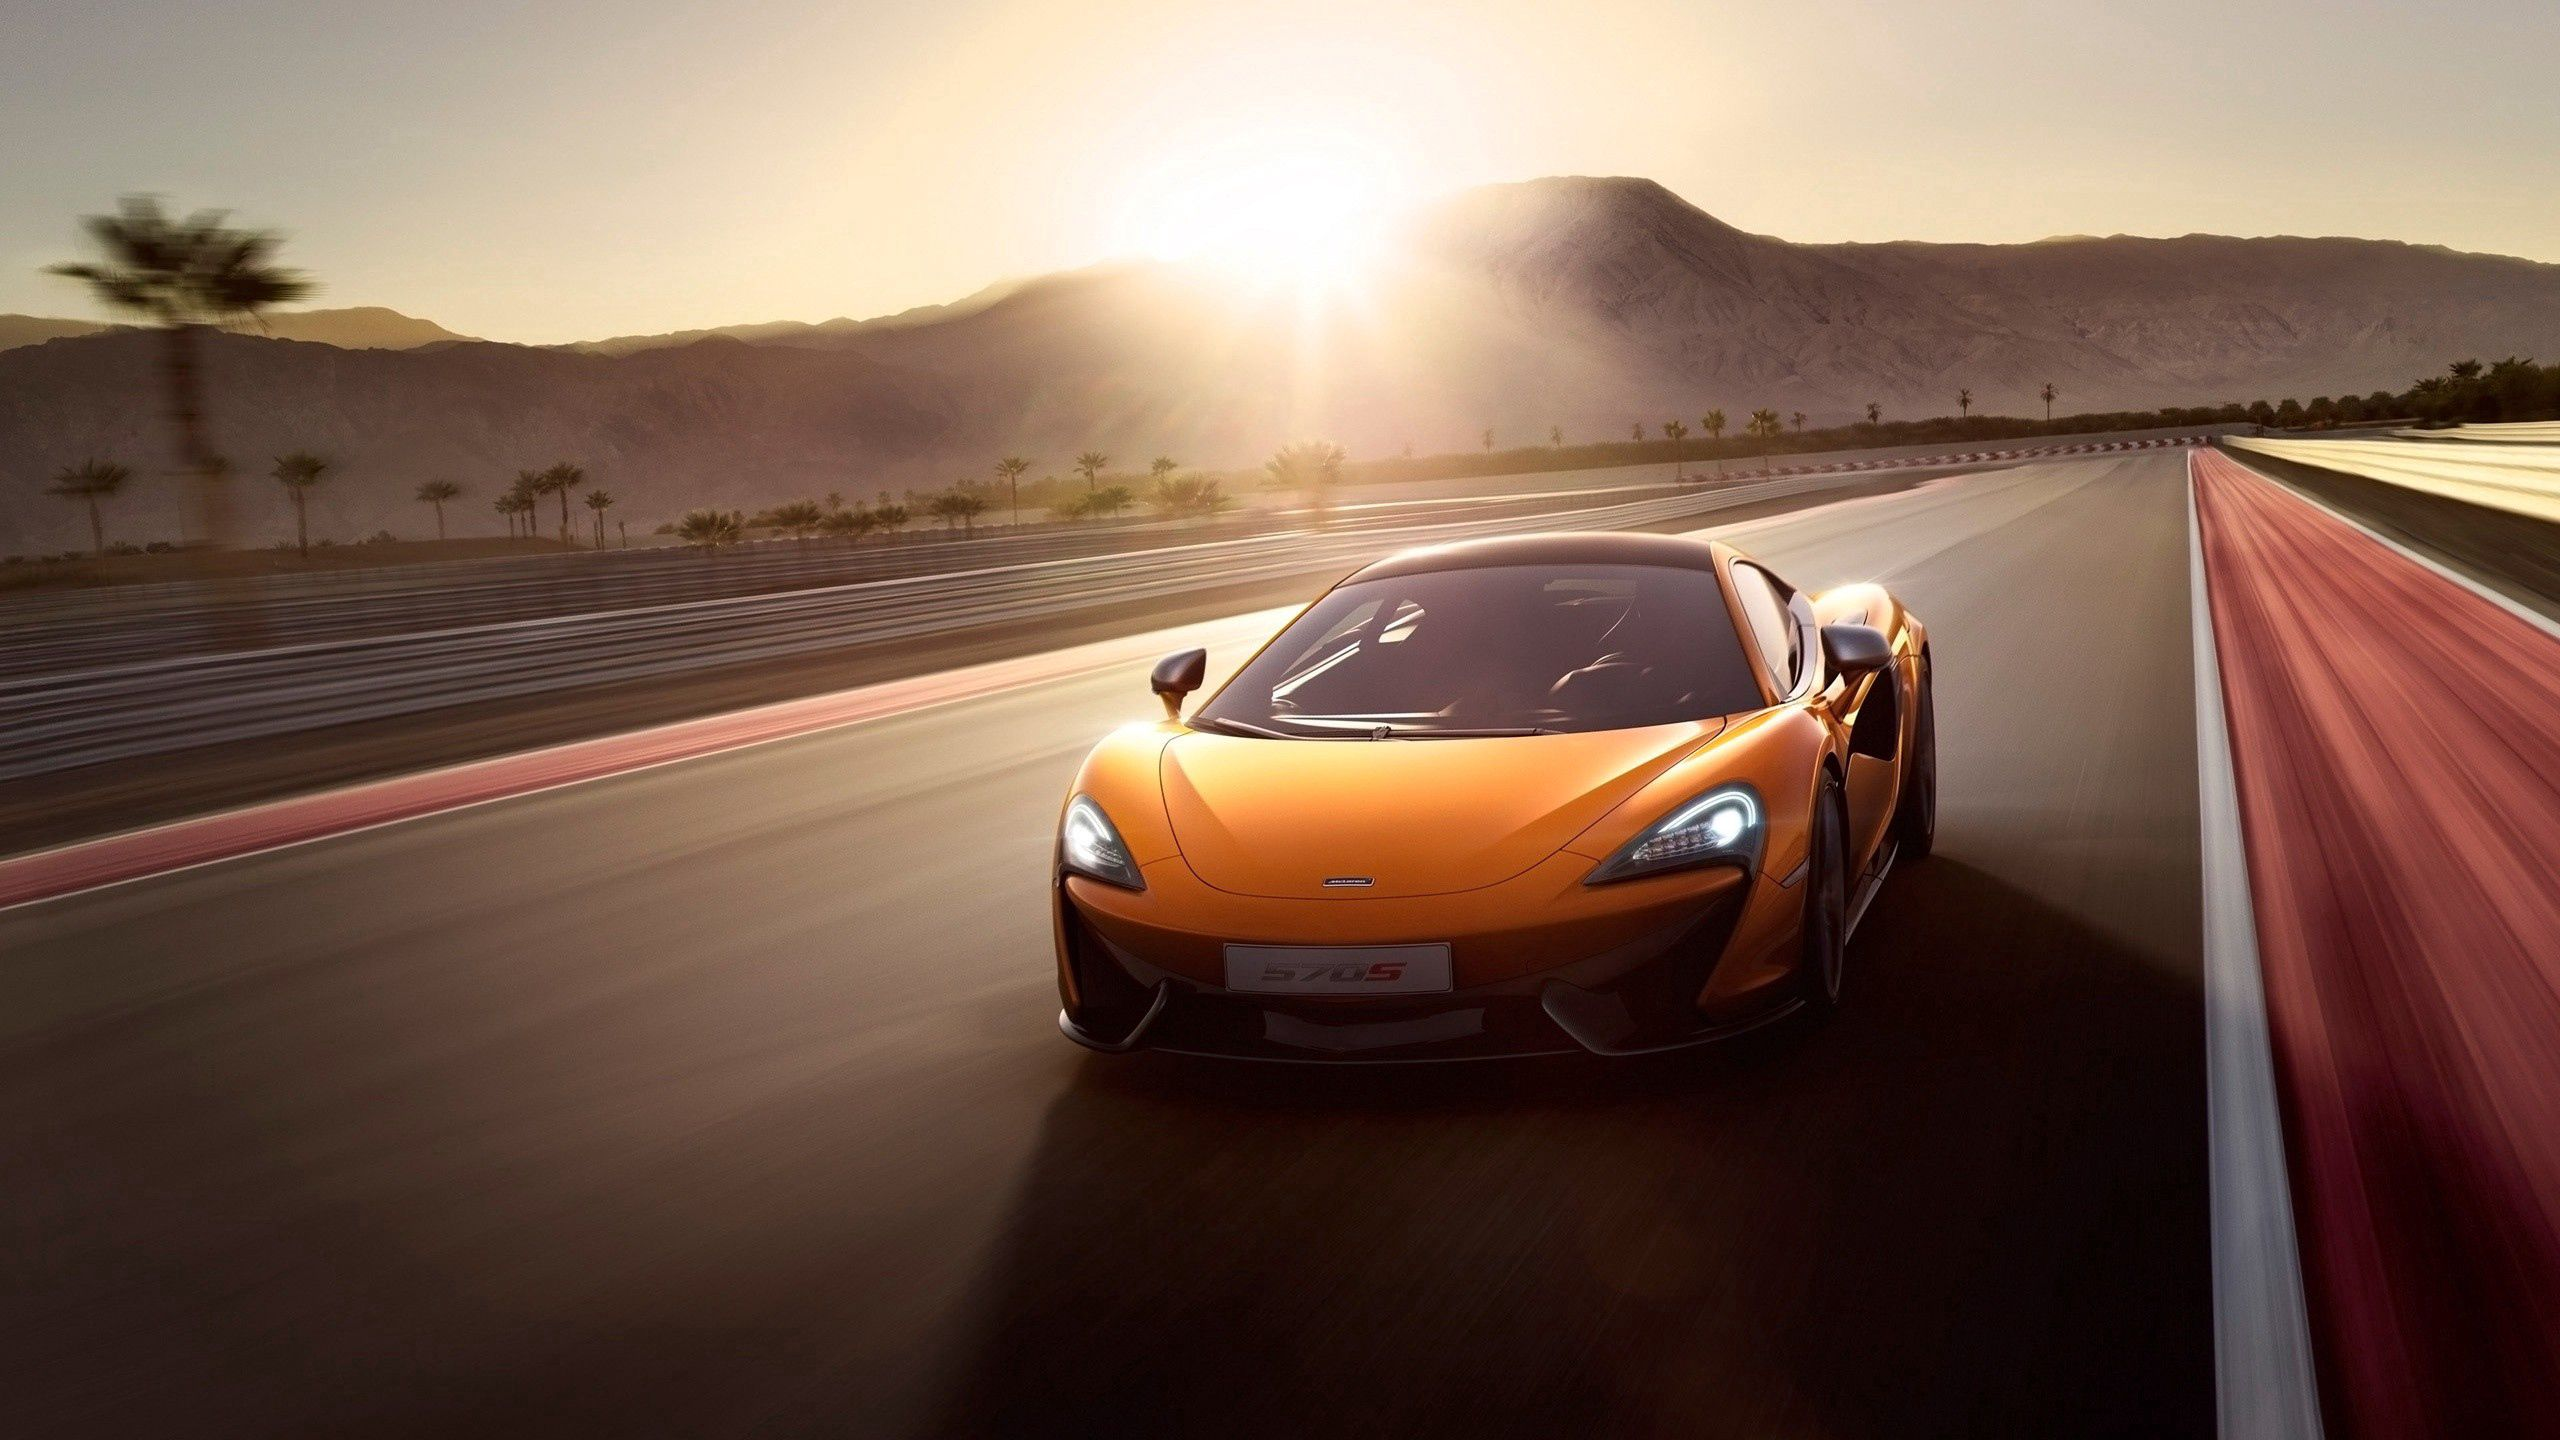 71431 download wallpaper Auto, Mclaren, Cars, Traffic, Movement, Mclaren 570S screensavers and pictures for free